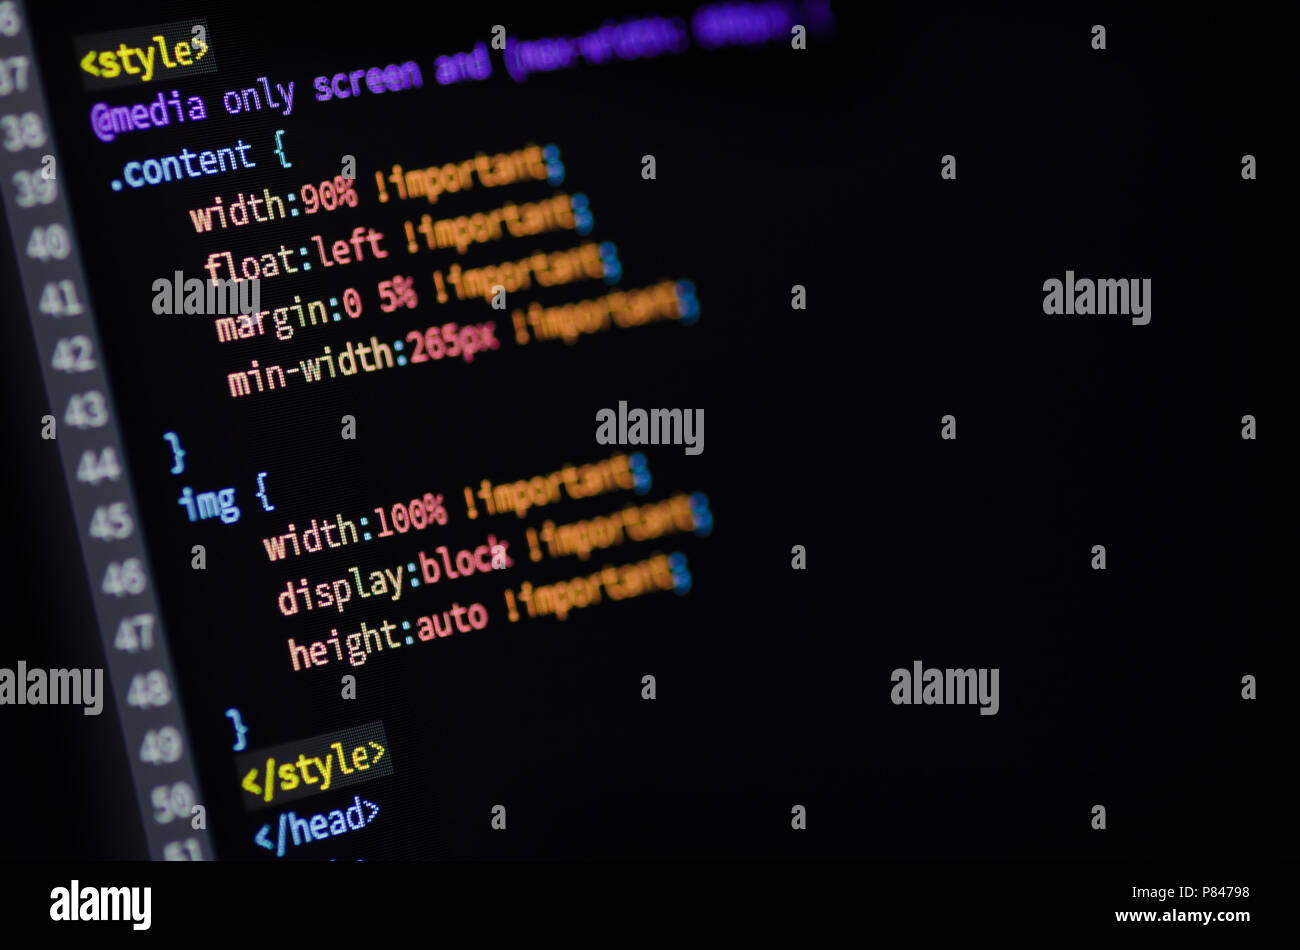 Close-up of media query, html and css code of web page displayed on a computer monitor - Stock Image